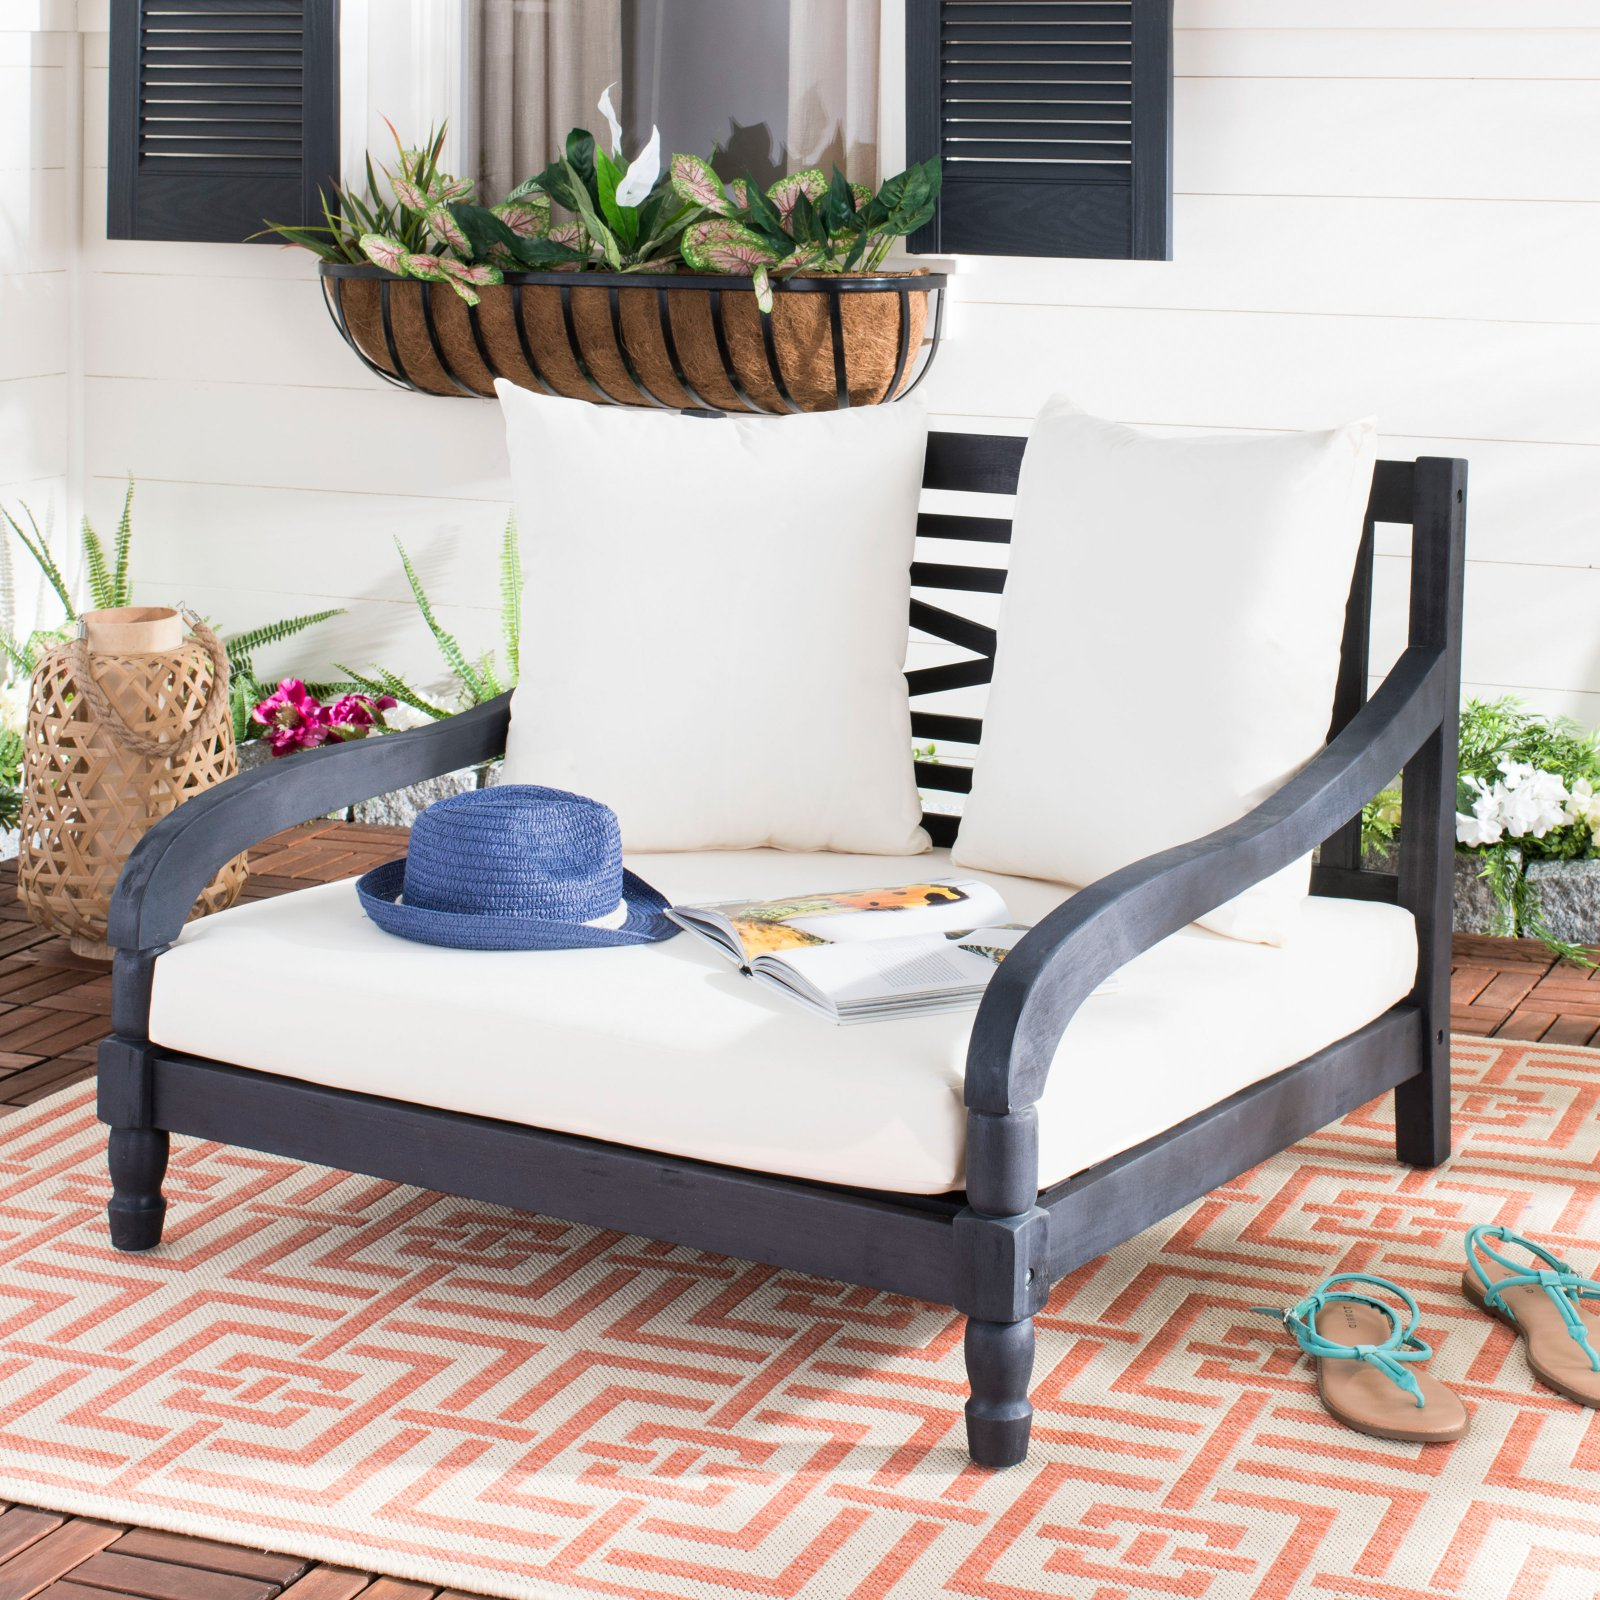 Most Recently Released Safavieh Pomona Outdoor Contemporary Lounger With Cushion Inside Outdoor Living Pomona Loungers (View 8 of 25)